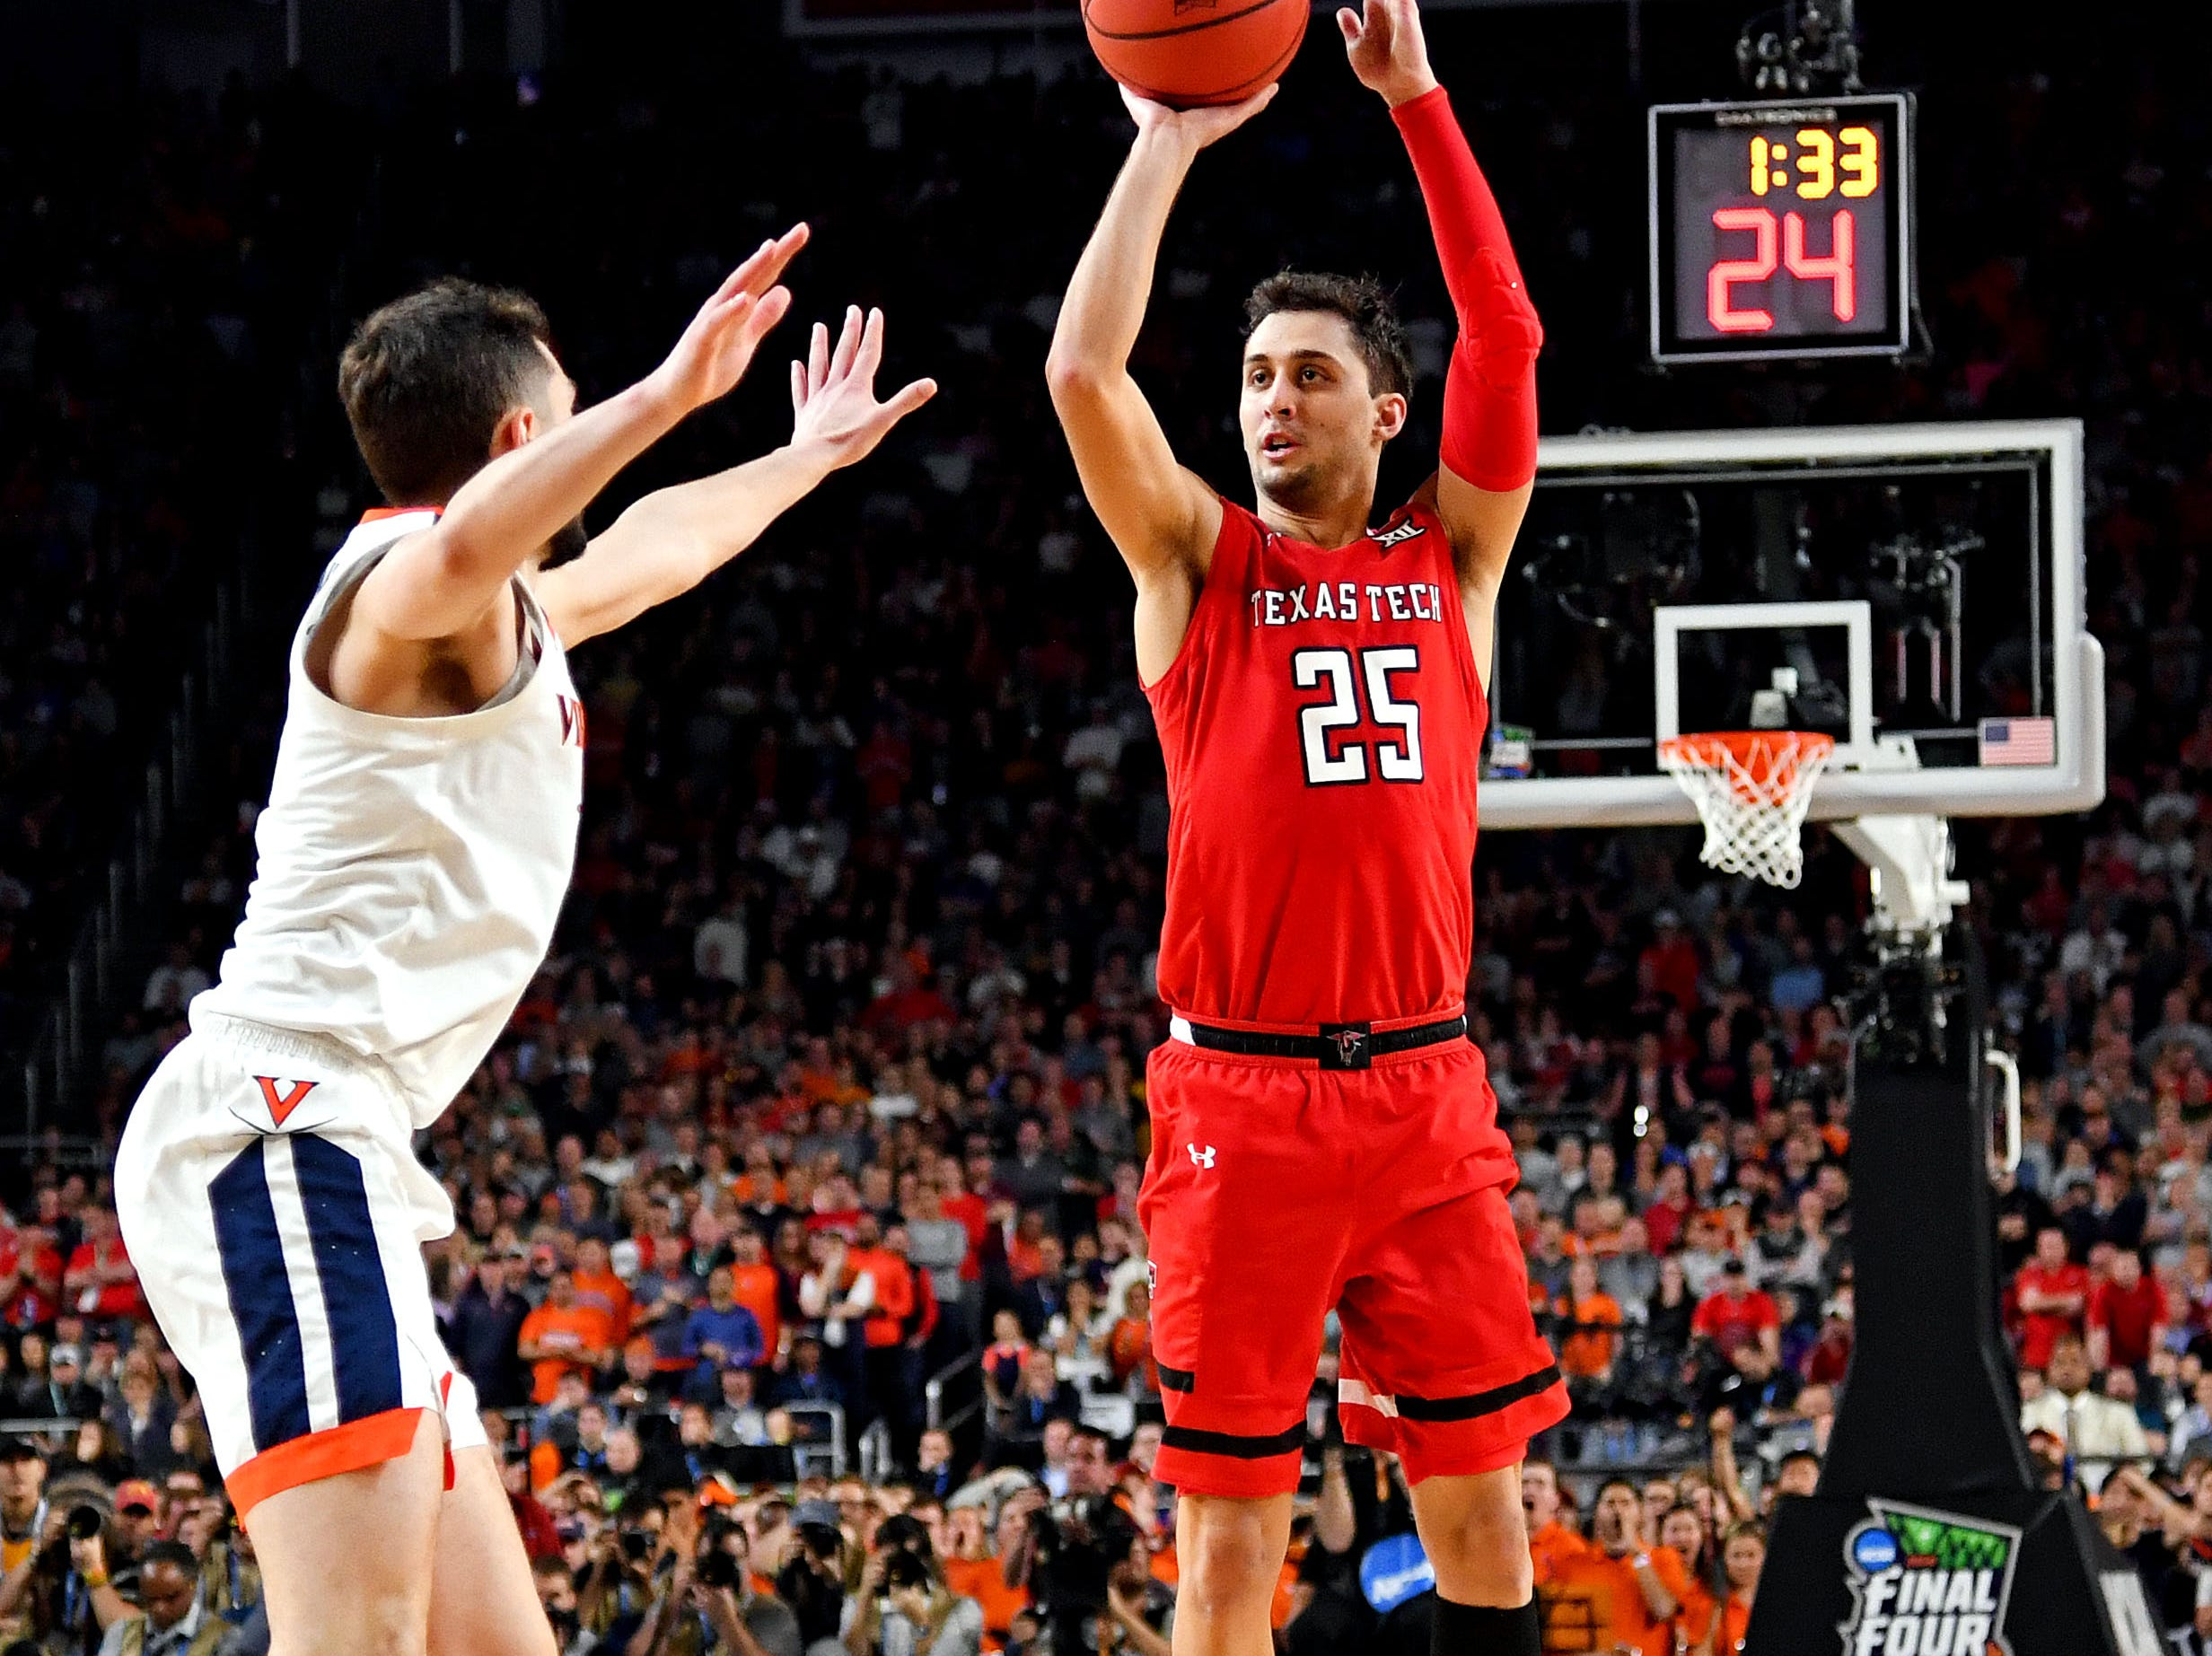 Apr 8, 2019; Minneapolis, MN, USA; Texas Tech Red Raiders guard Davide Moretti (25) shoots the ball during the second half against Virginia Cavaliers guard Ty Jerome (11) in the championship game of the 2019 men's Final Four at US Bank Stadium. Mandatory Credit: Bob Donnan-USA TODAY Sports